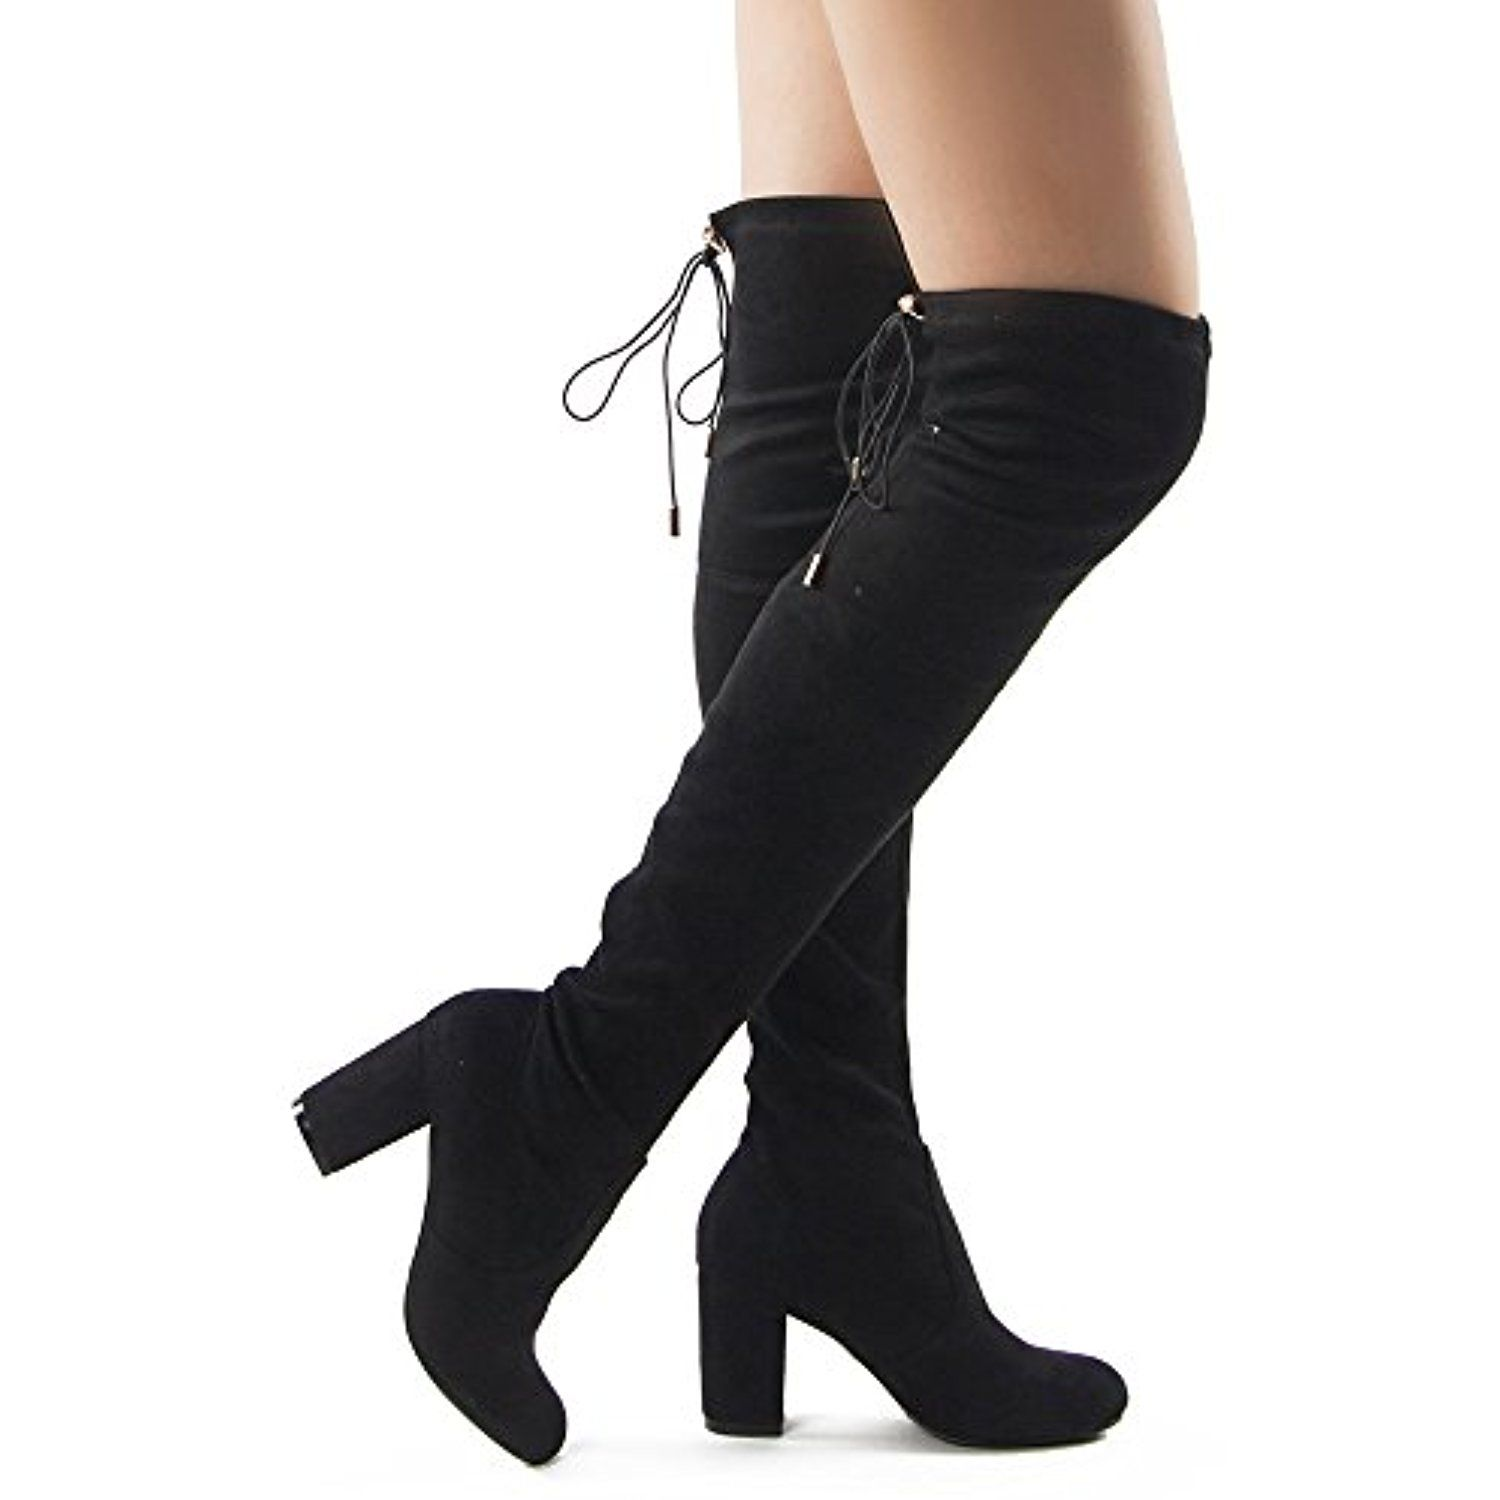 cb5c85287d3 RF Women s Thigh High Over The Knee Block Chunky Heel Pointy Round Toe  Boots BLACK With Free Shoelace (5.5)    Click image for more details.